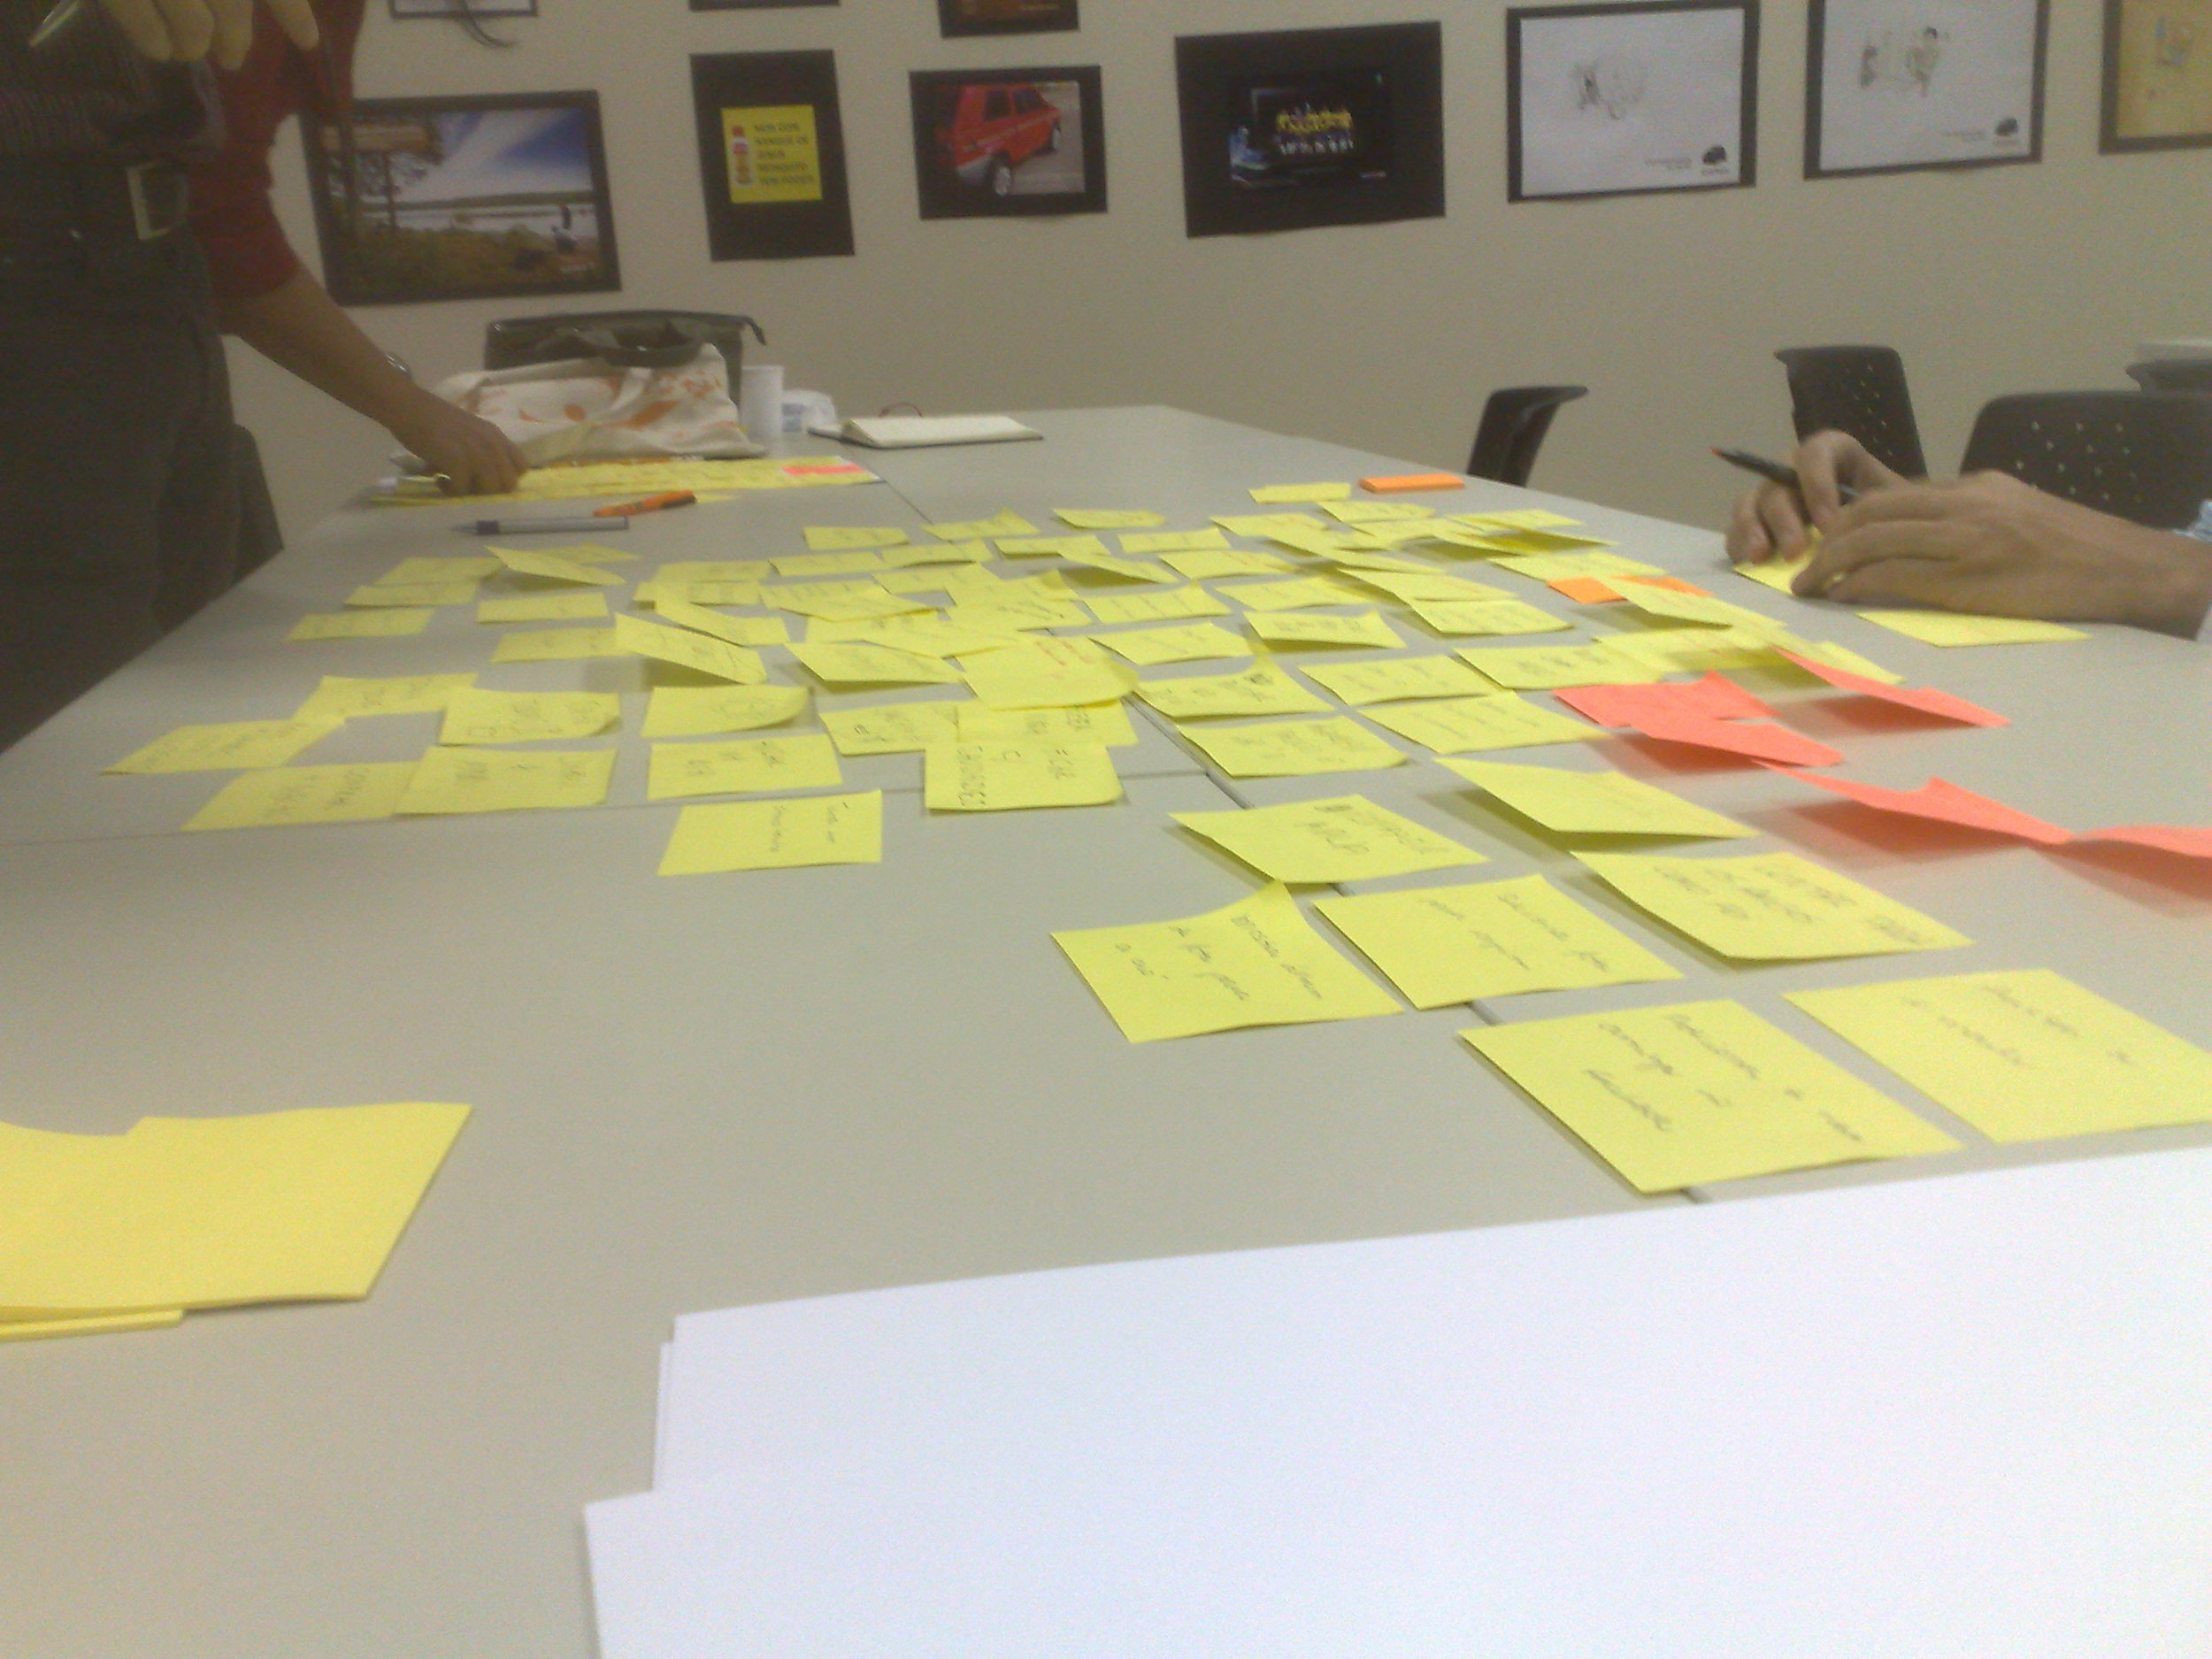 Day 7 - #DesignThinking and #Innovation - #SocialInnovation @dtespm w/@LuisAlt @TennyDesign